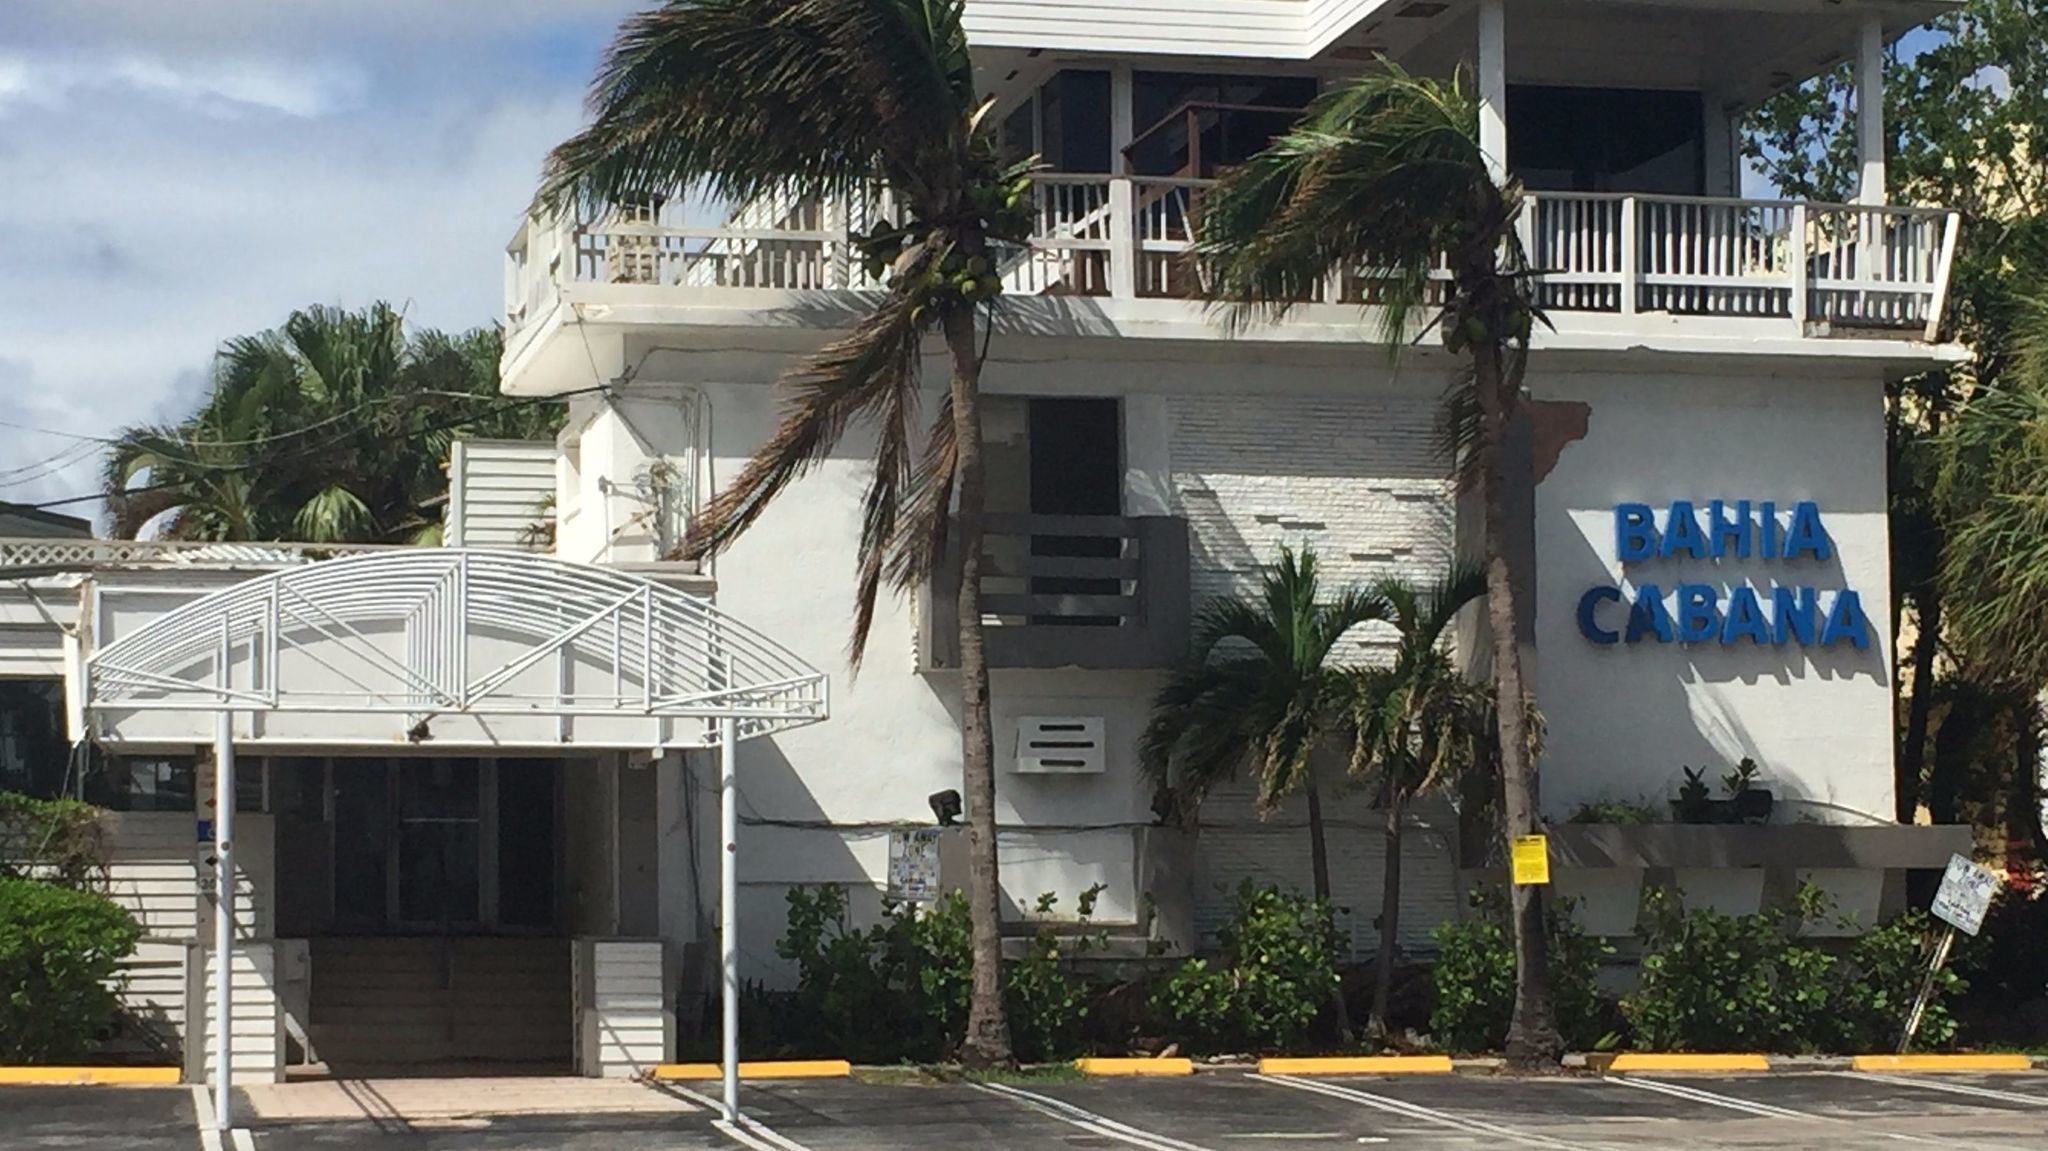 Hurricane Irma Erodes September Hotel Visits In Parts Of South Florida Some Properties Remain Closed Sun Sentinel